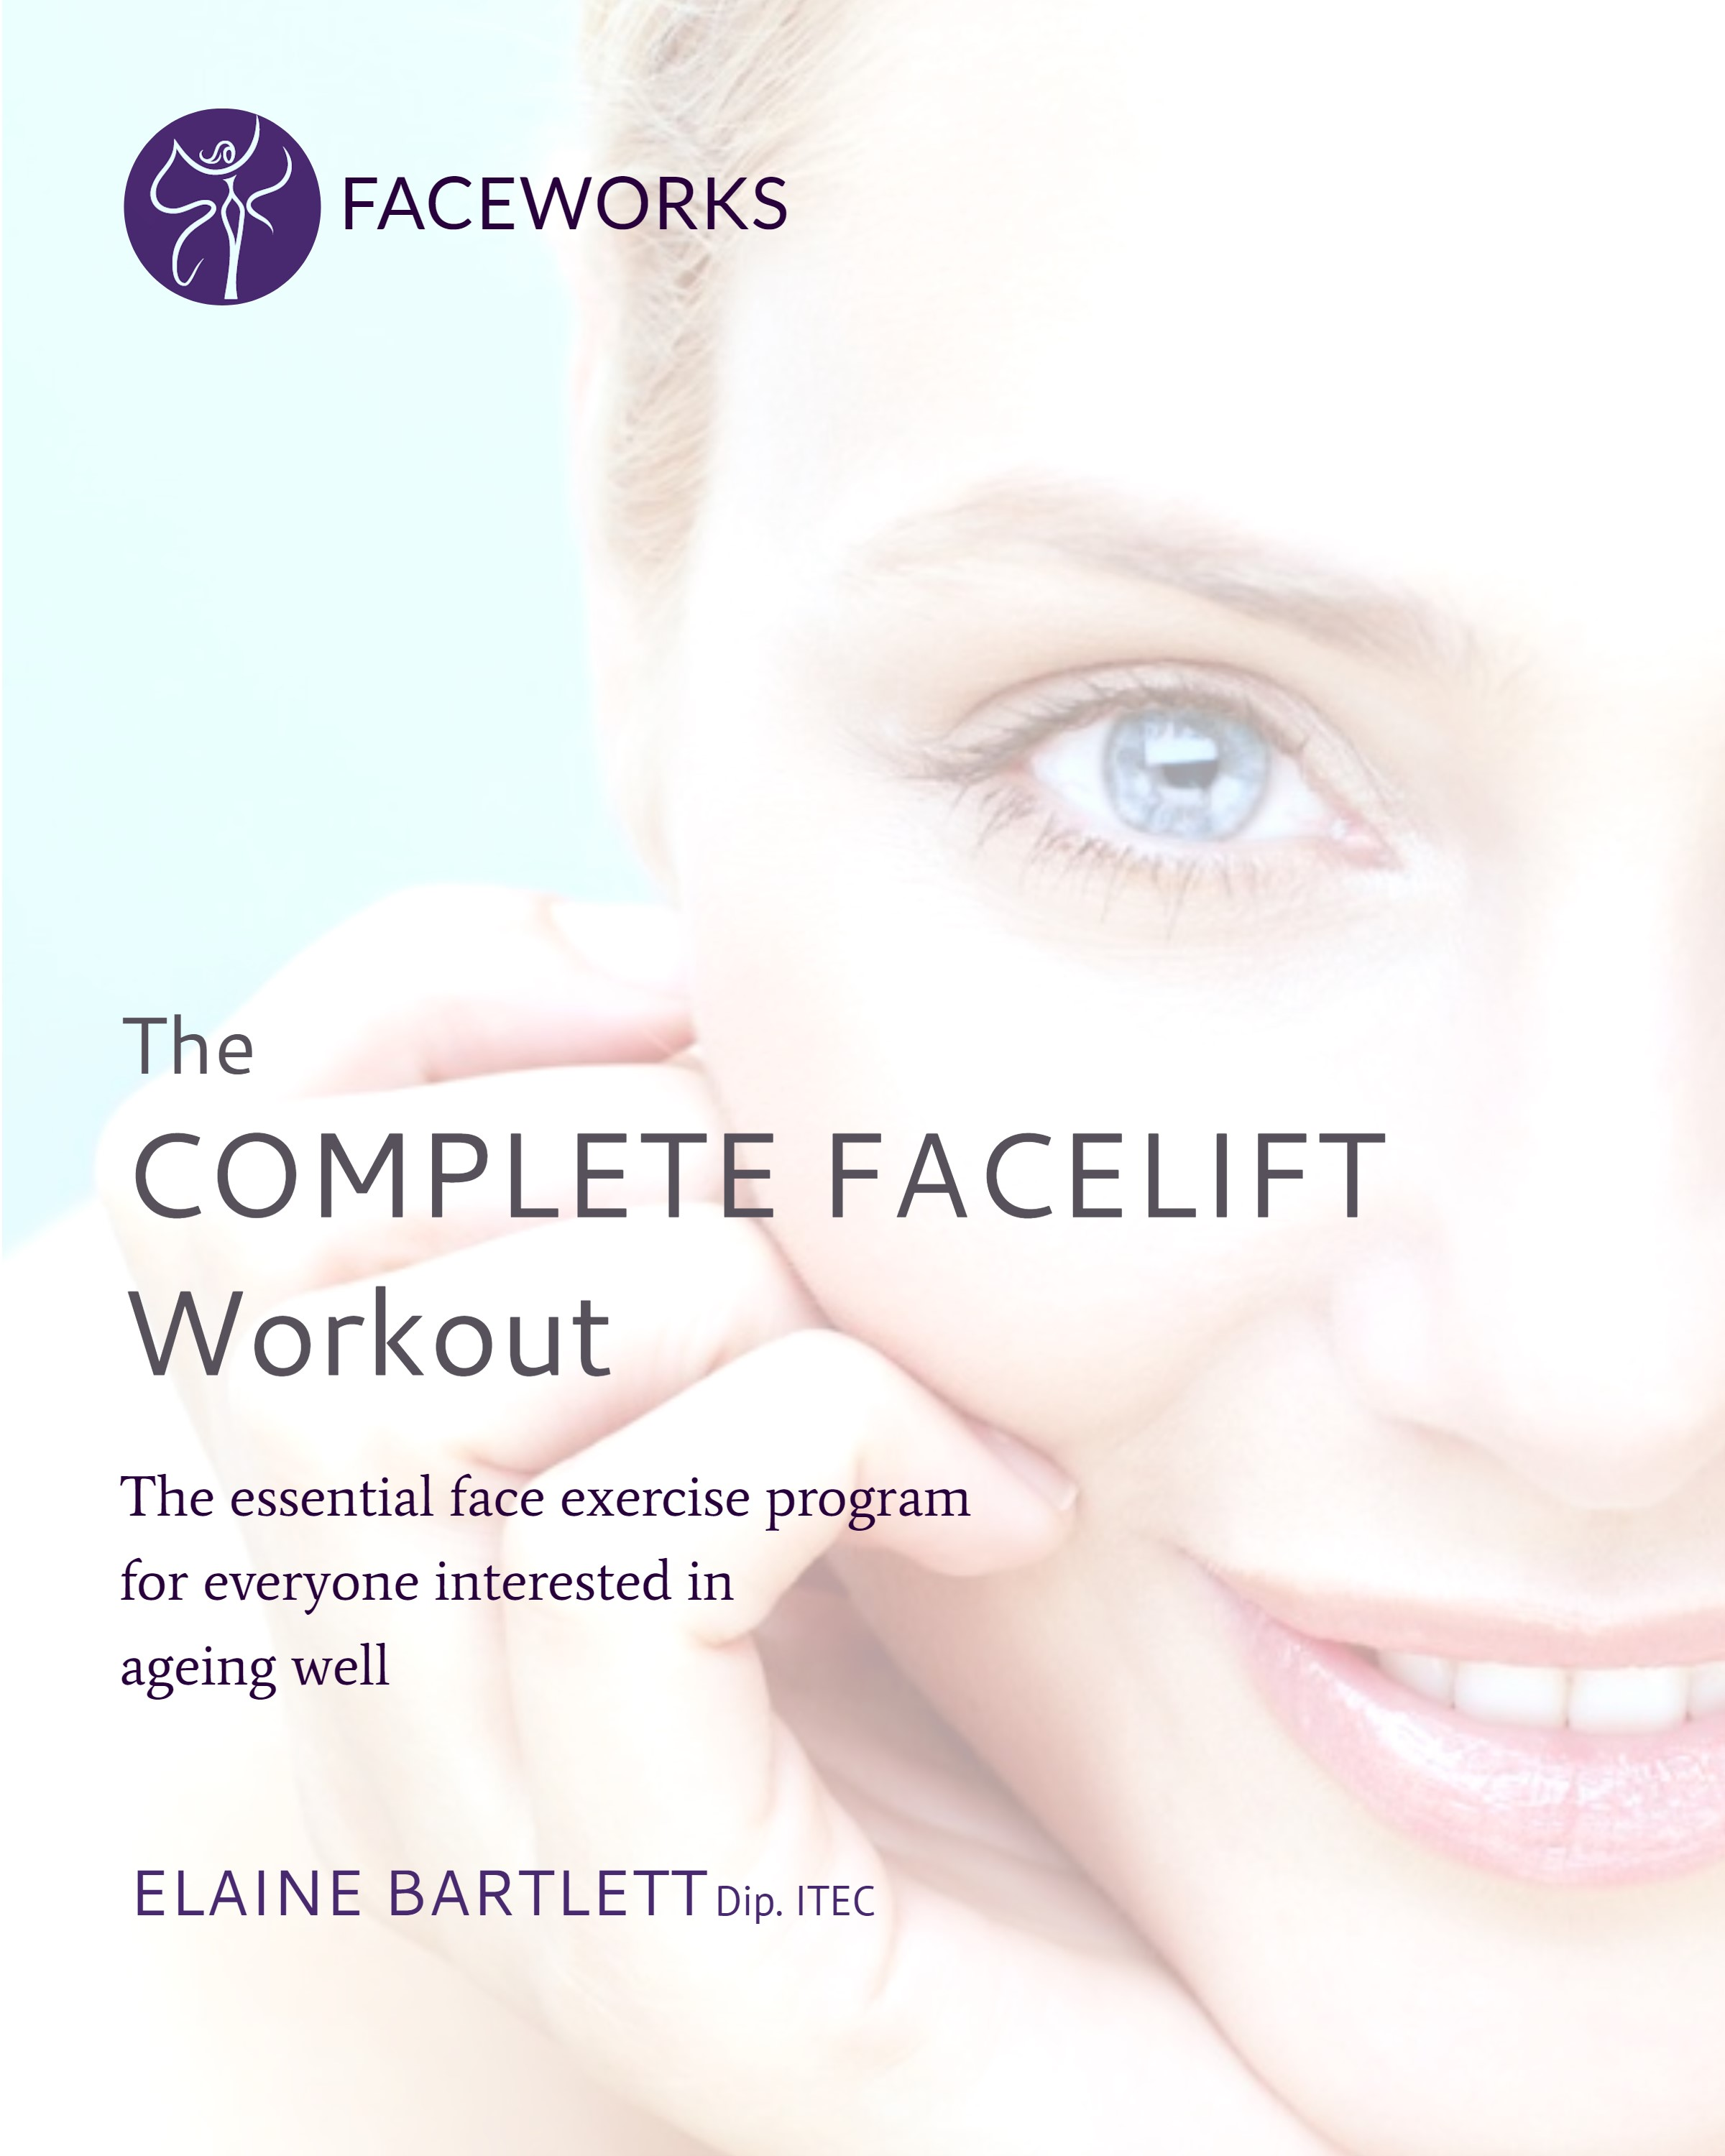 The Complete Facelift Workout Book